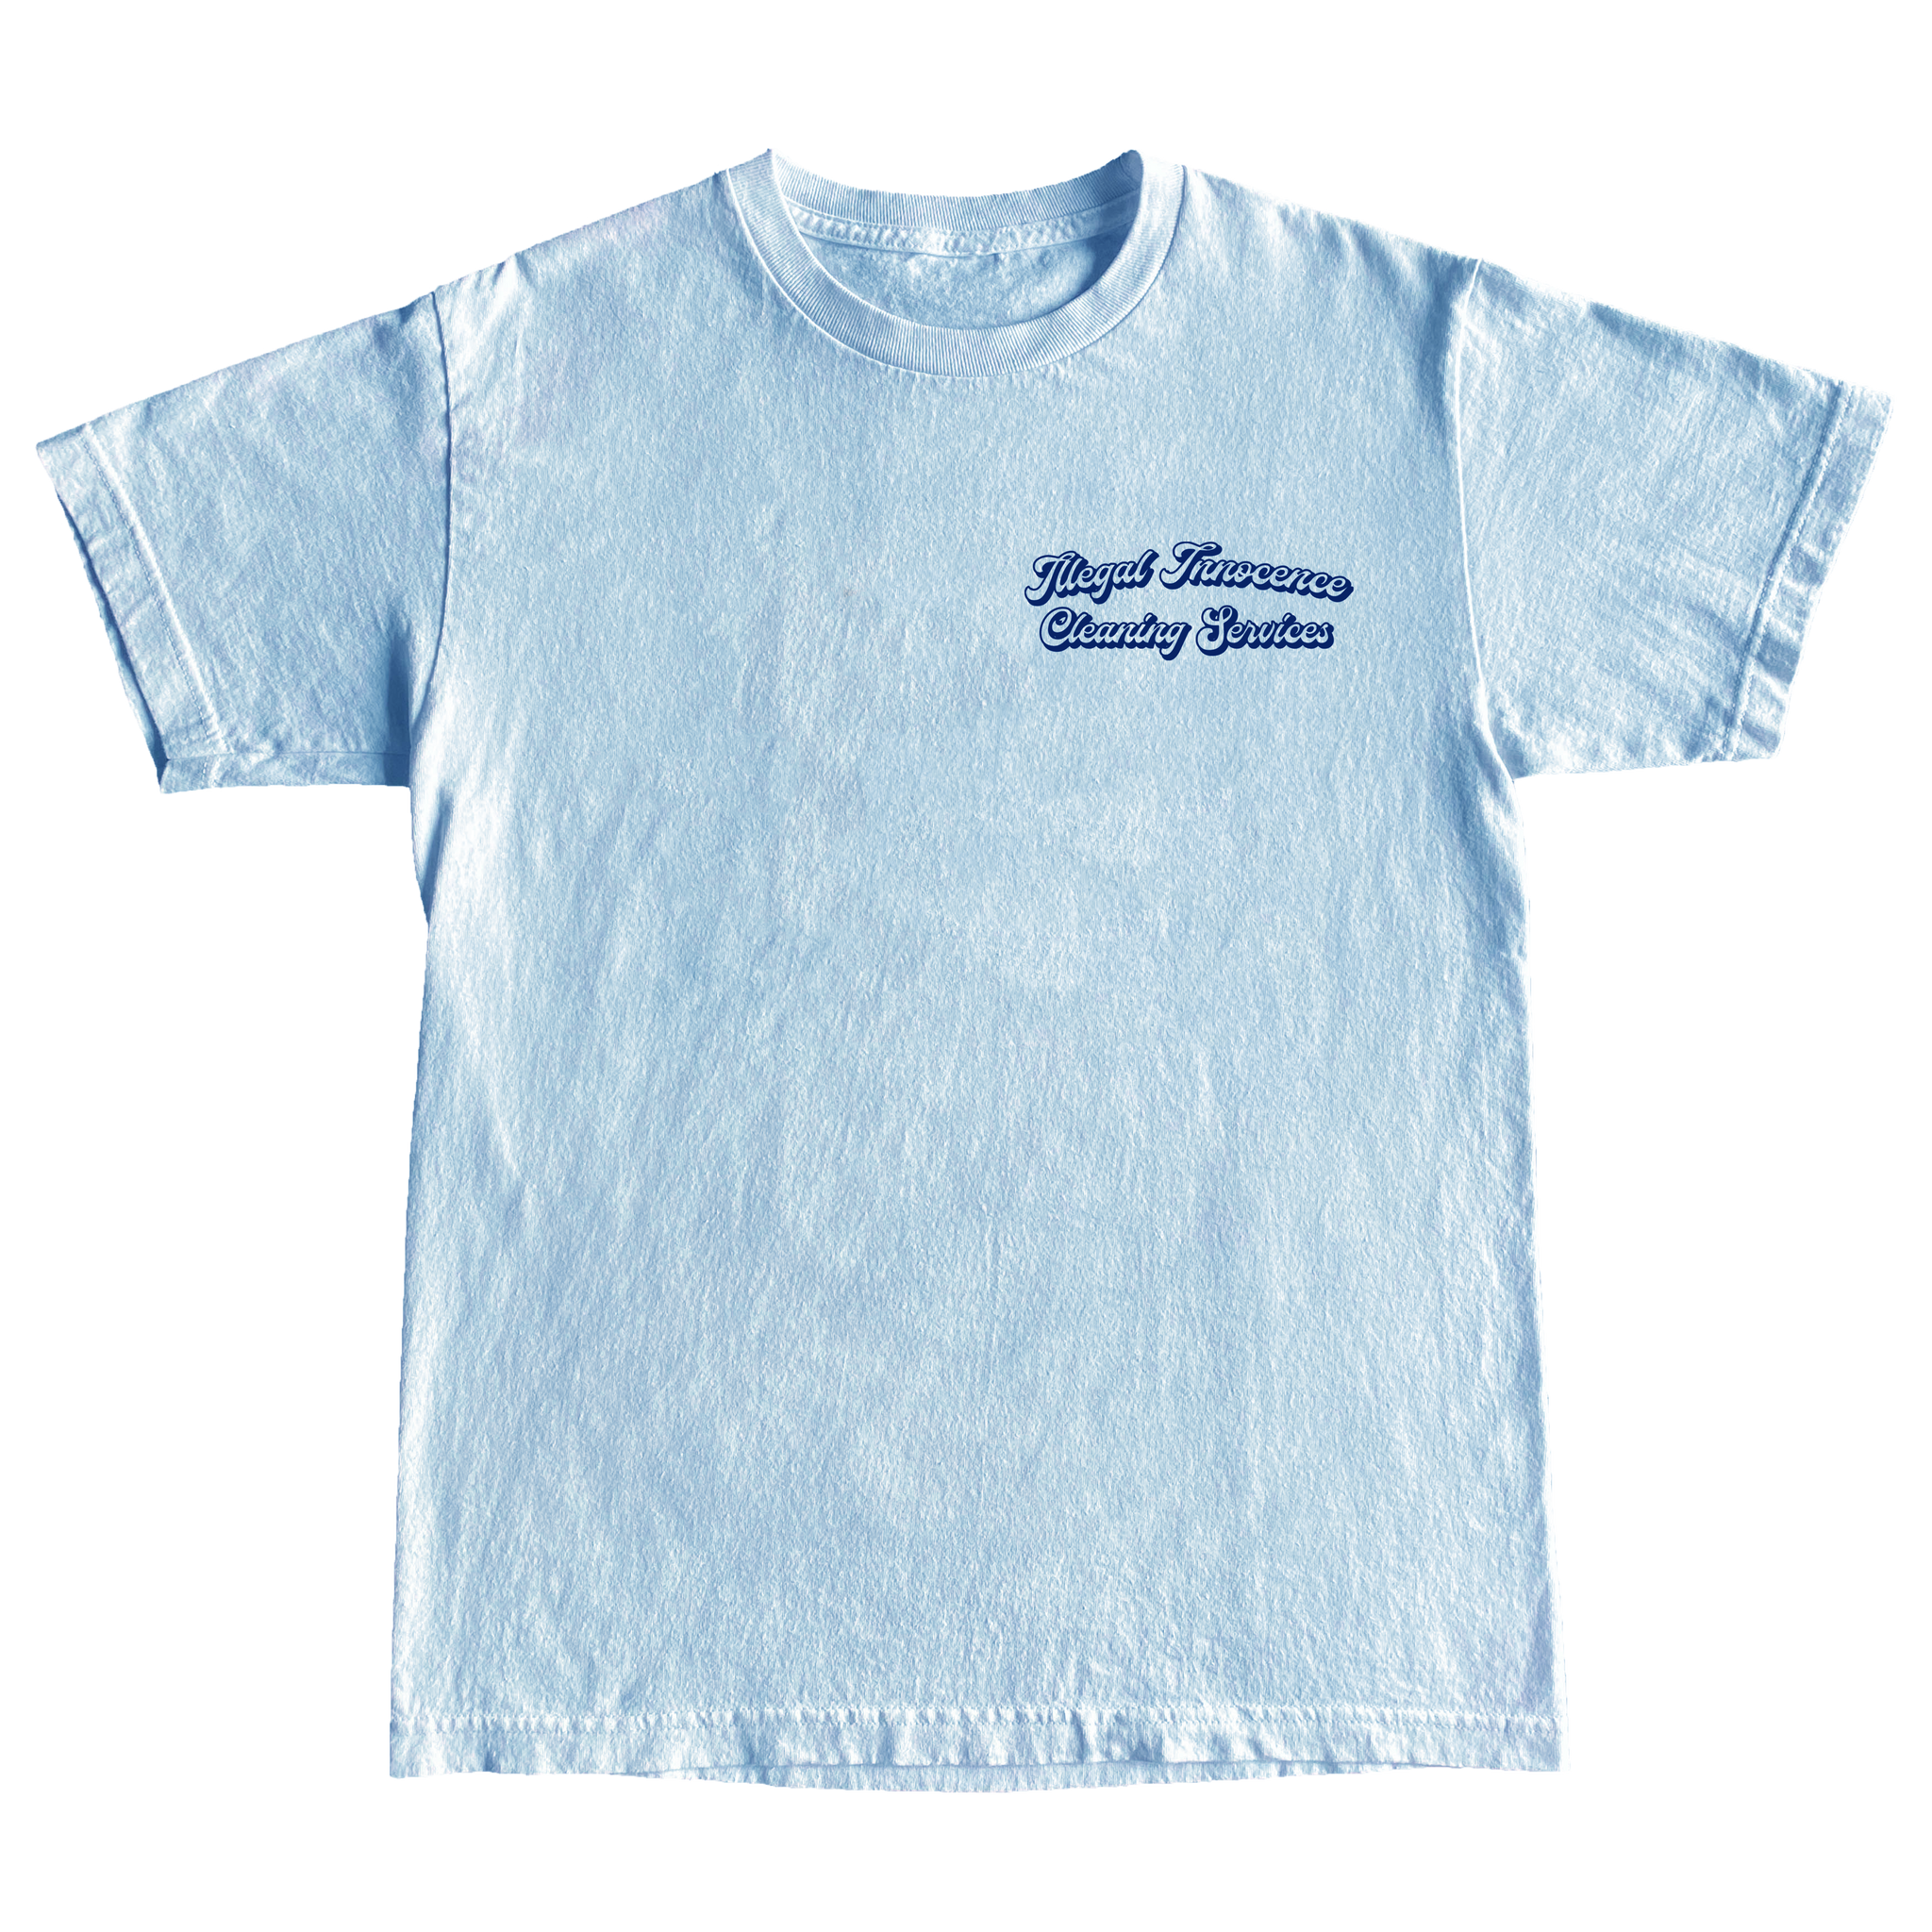 Cleaning Services Tee (Light Blue)